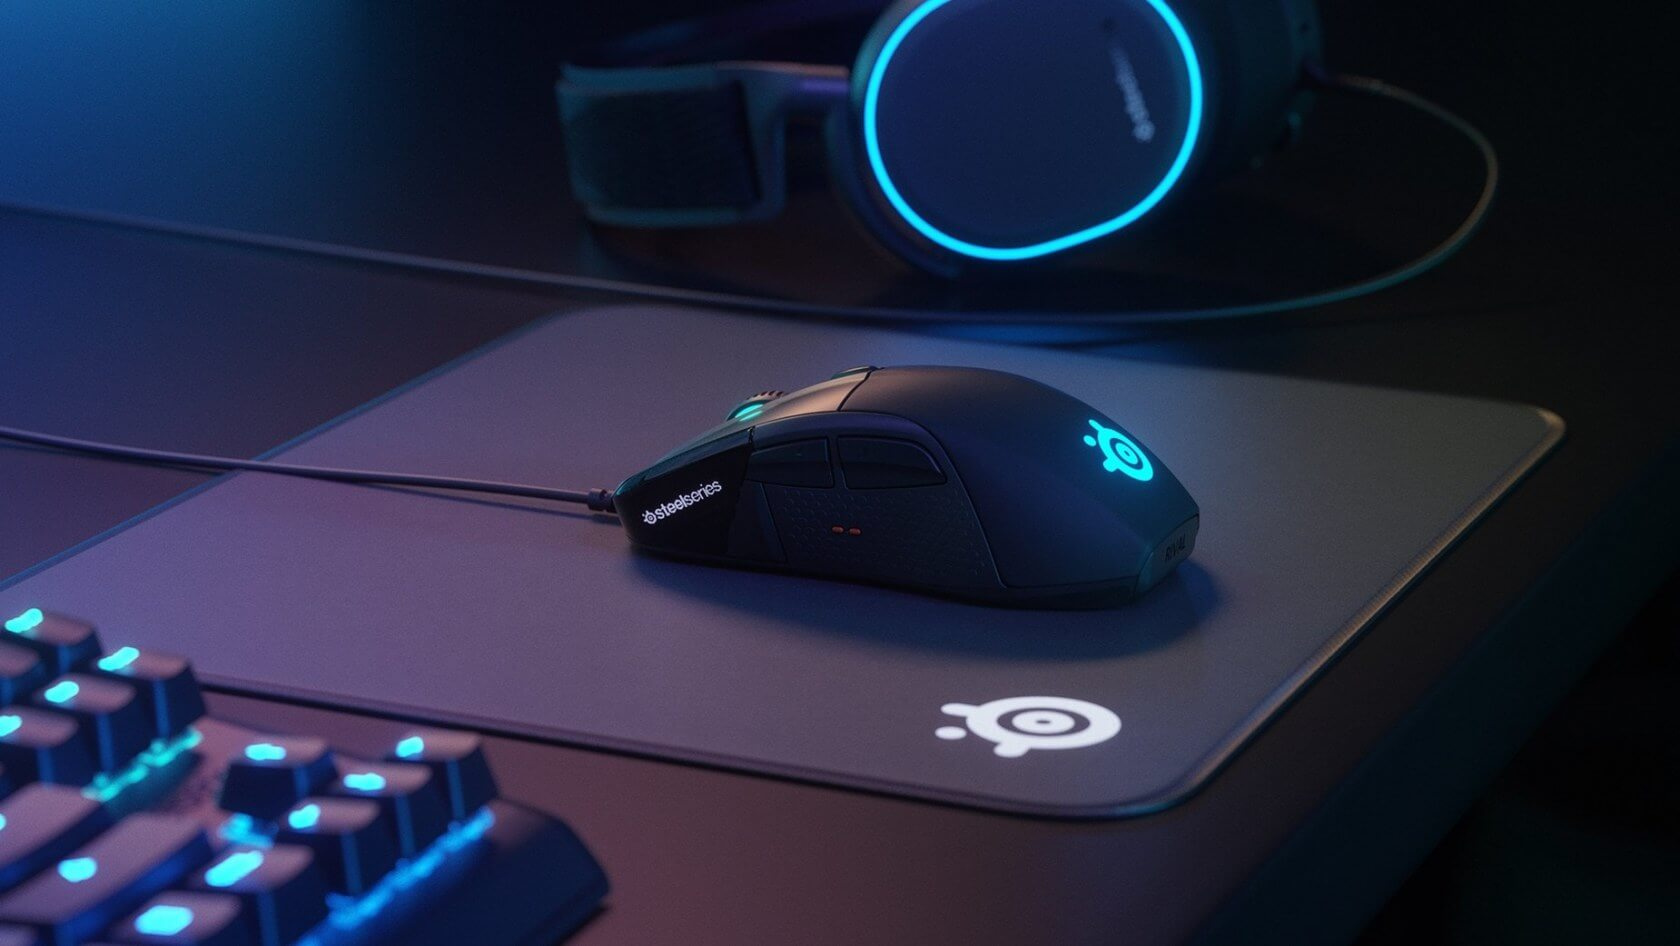 SteelSeries launches two high-end gaming mice, the Rival 650 and 710